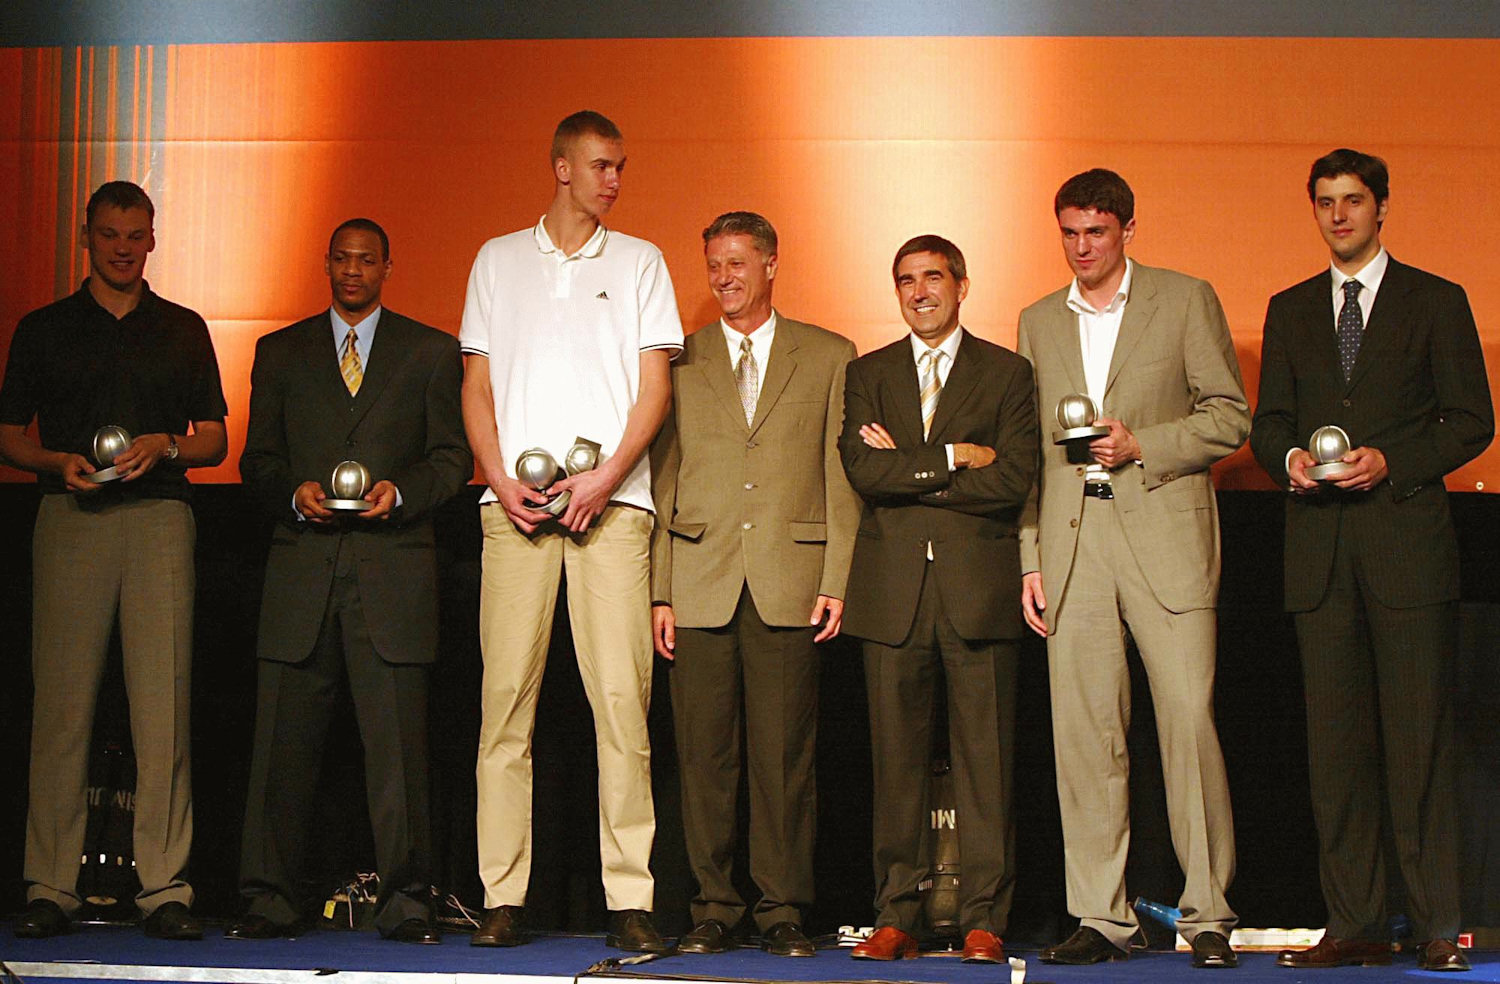 2003-04 All-Euroleague team - Final Four Tel Aviv 2004